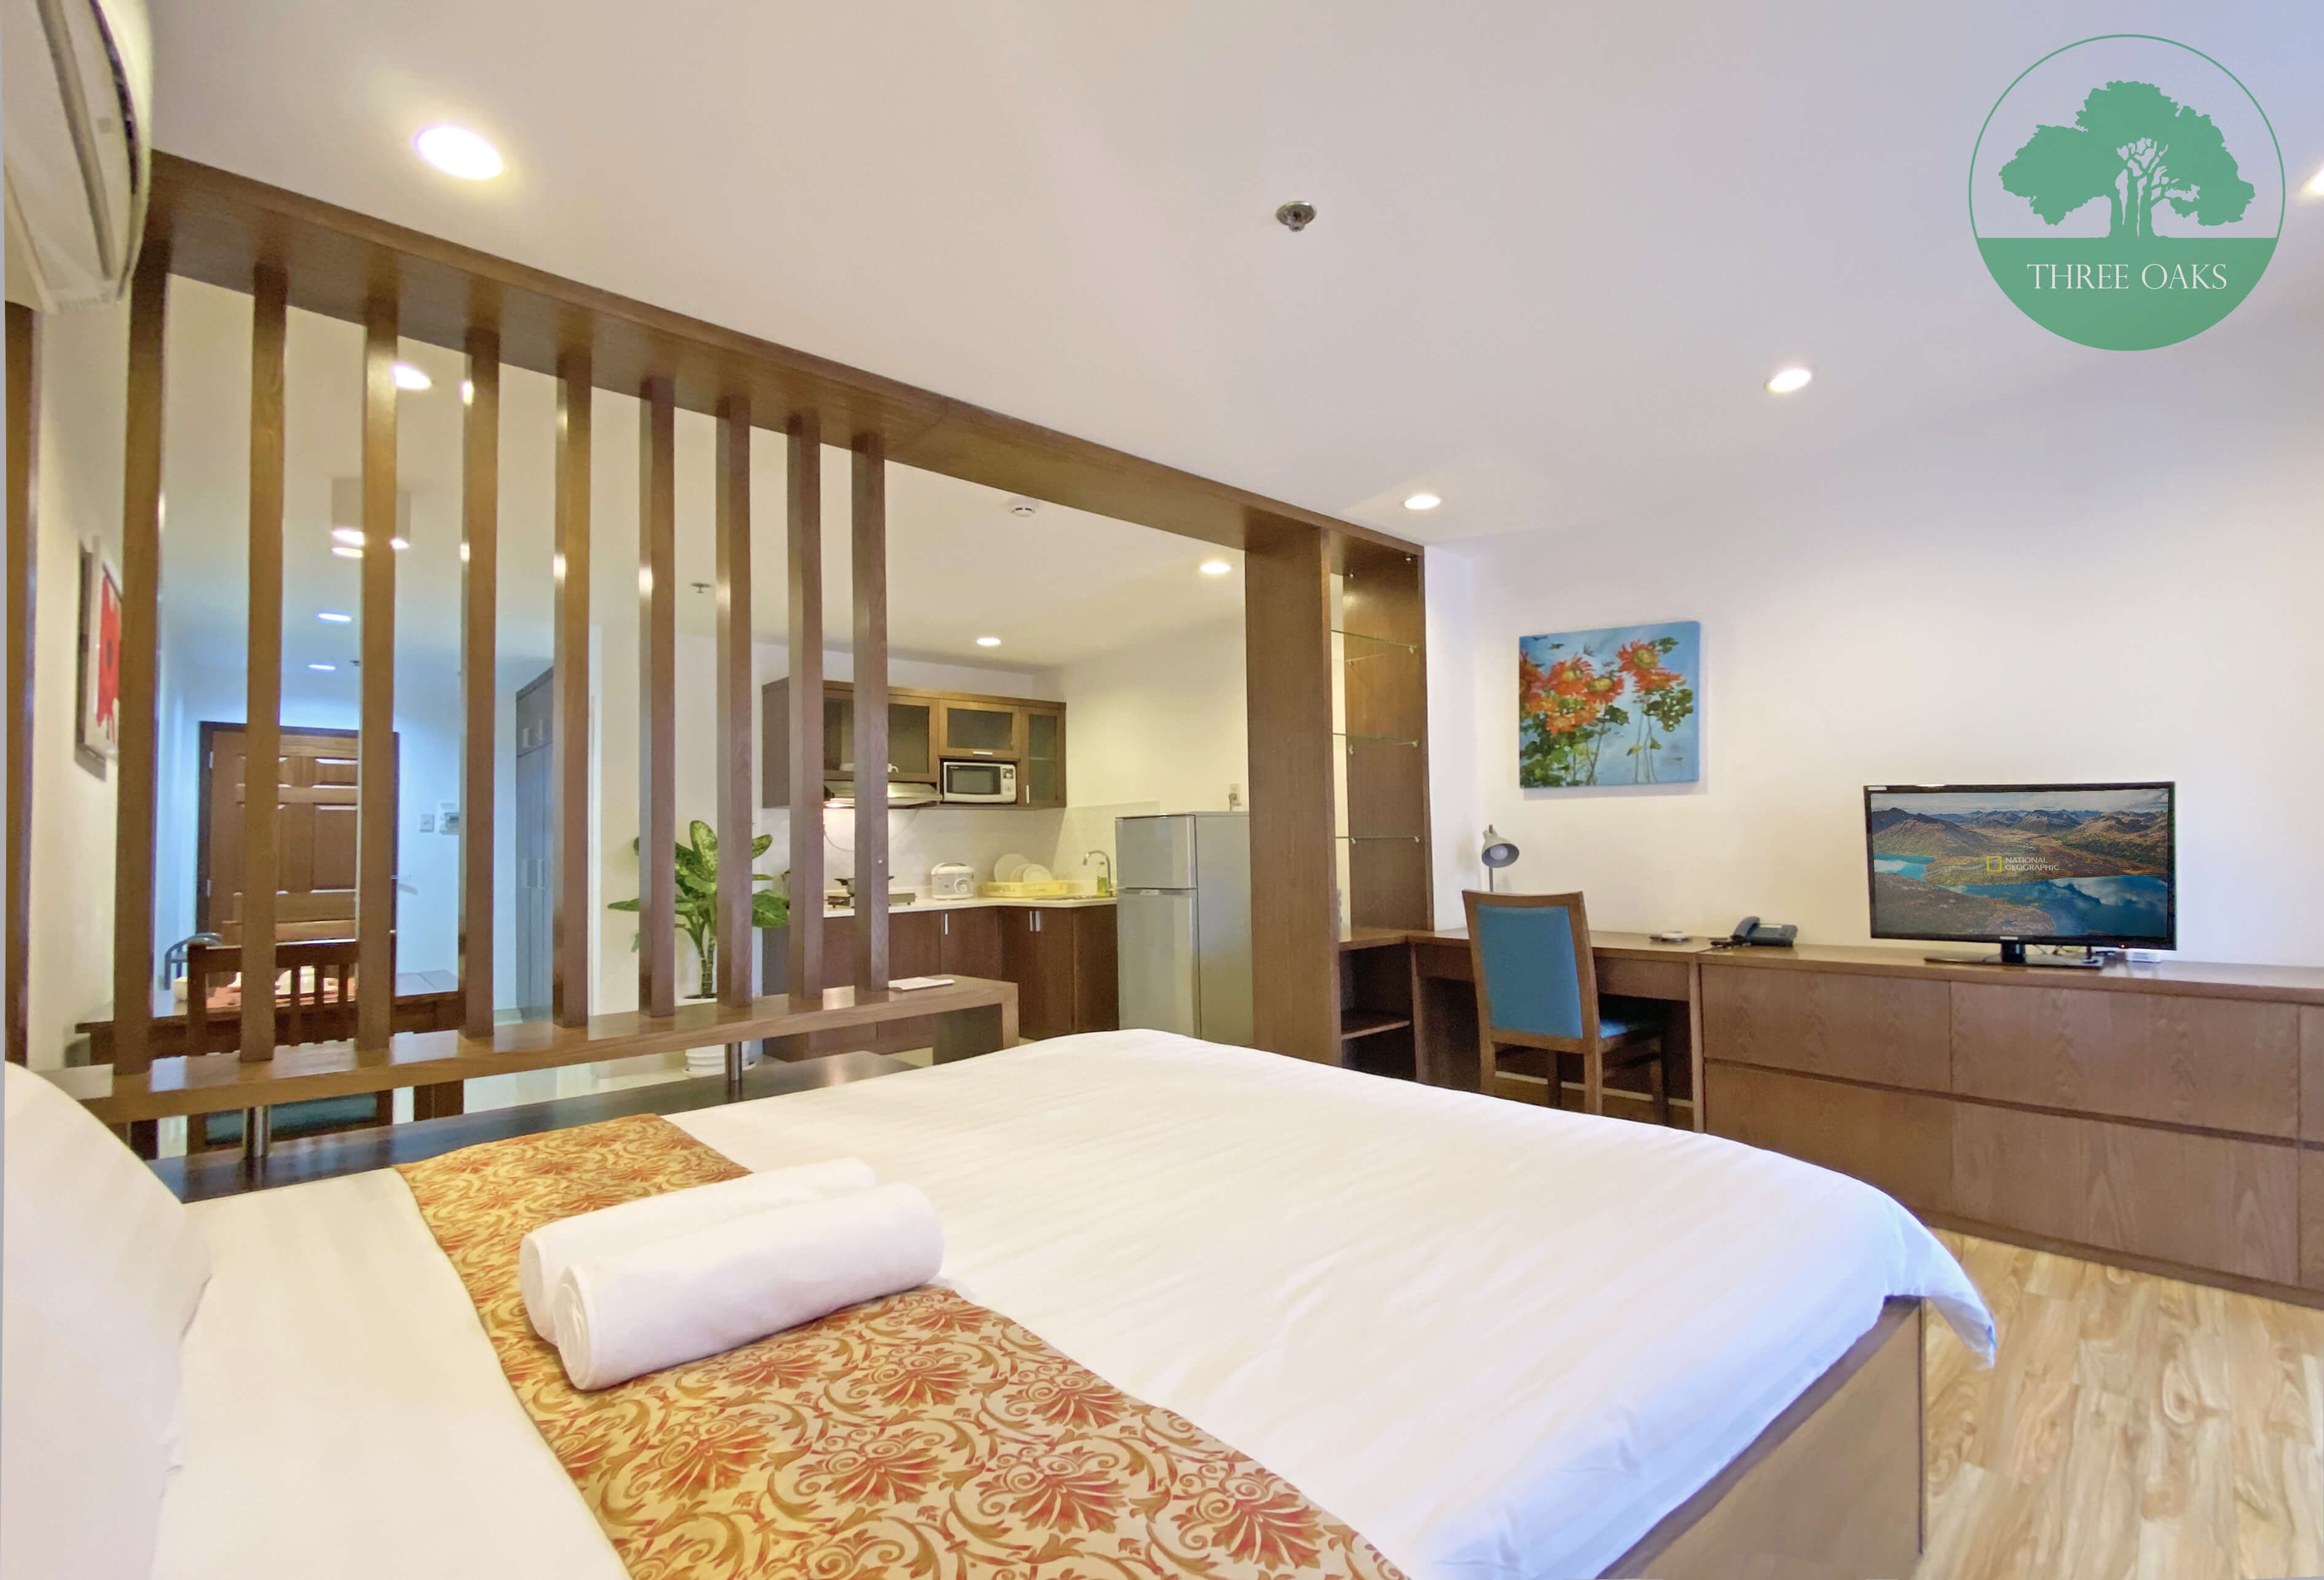 three-oaks-1-serviced-apartments-in-ho-chi-minh-city-in vietnam-7